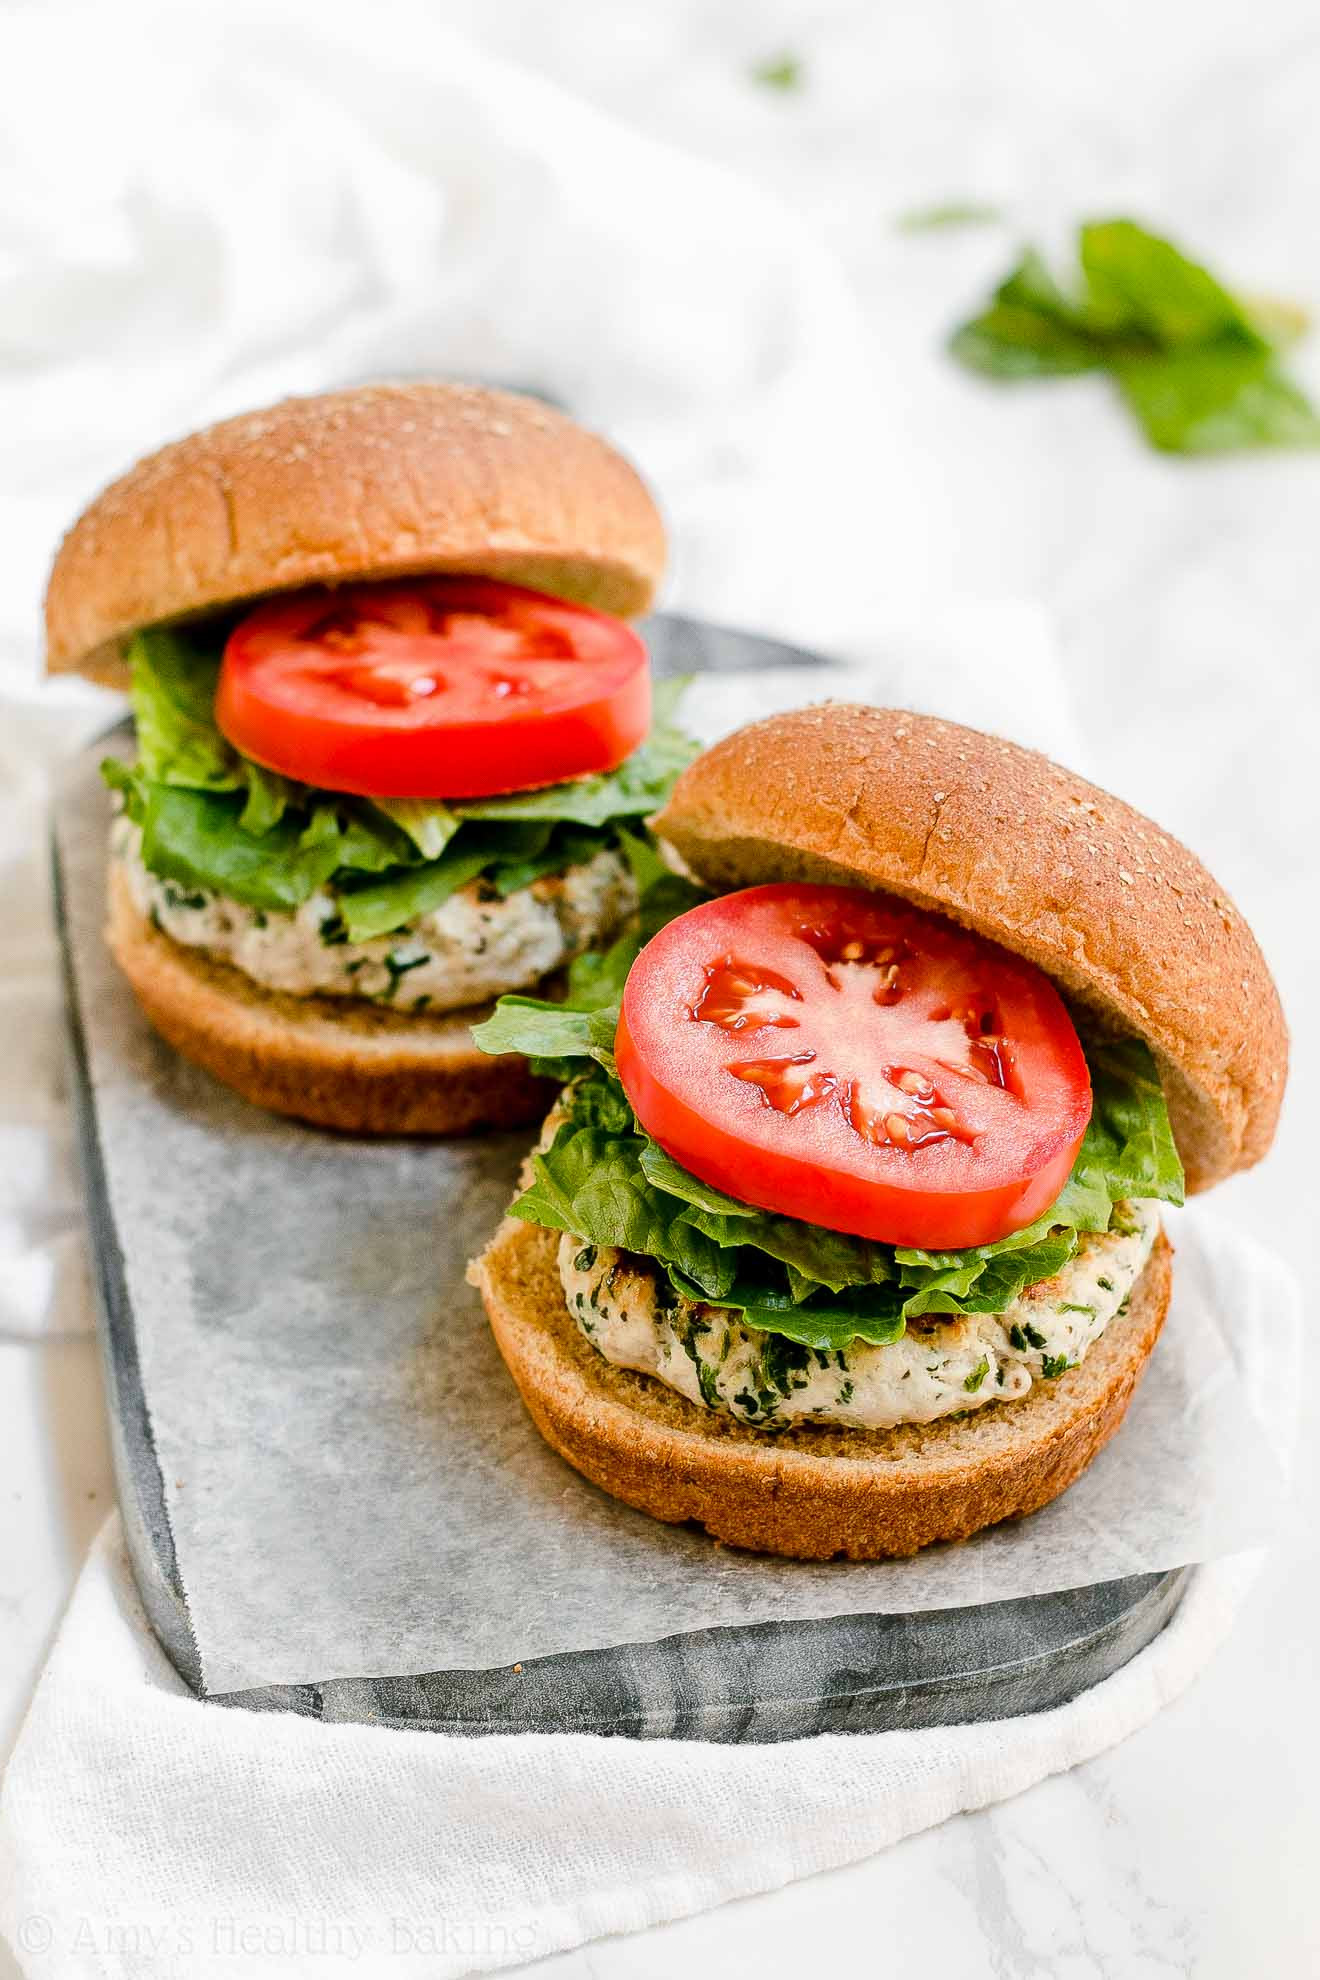 Healthy Turkey Burgers Without Bread  The Ultimate Healthy Turkey Burgers